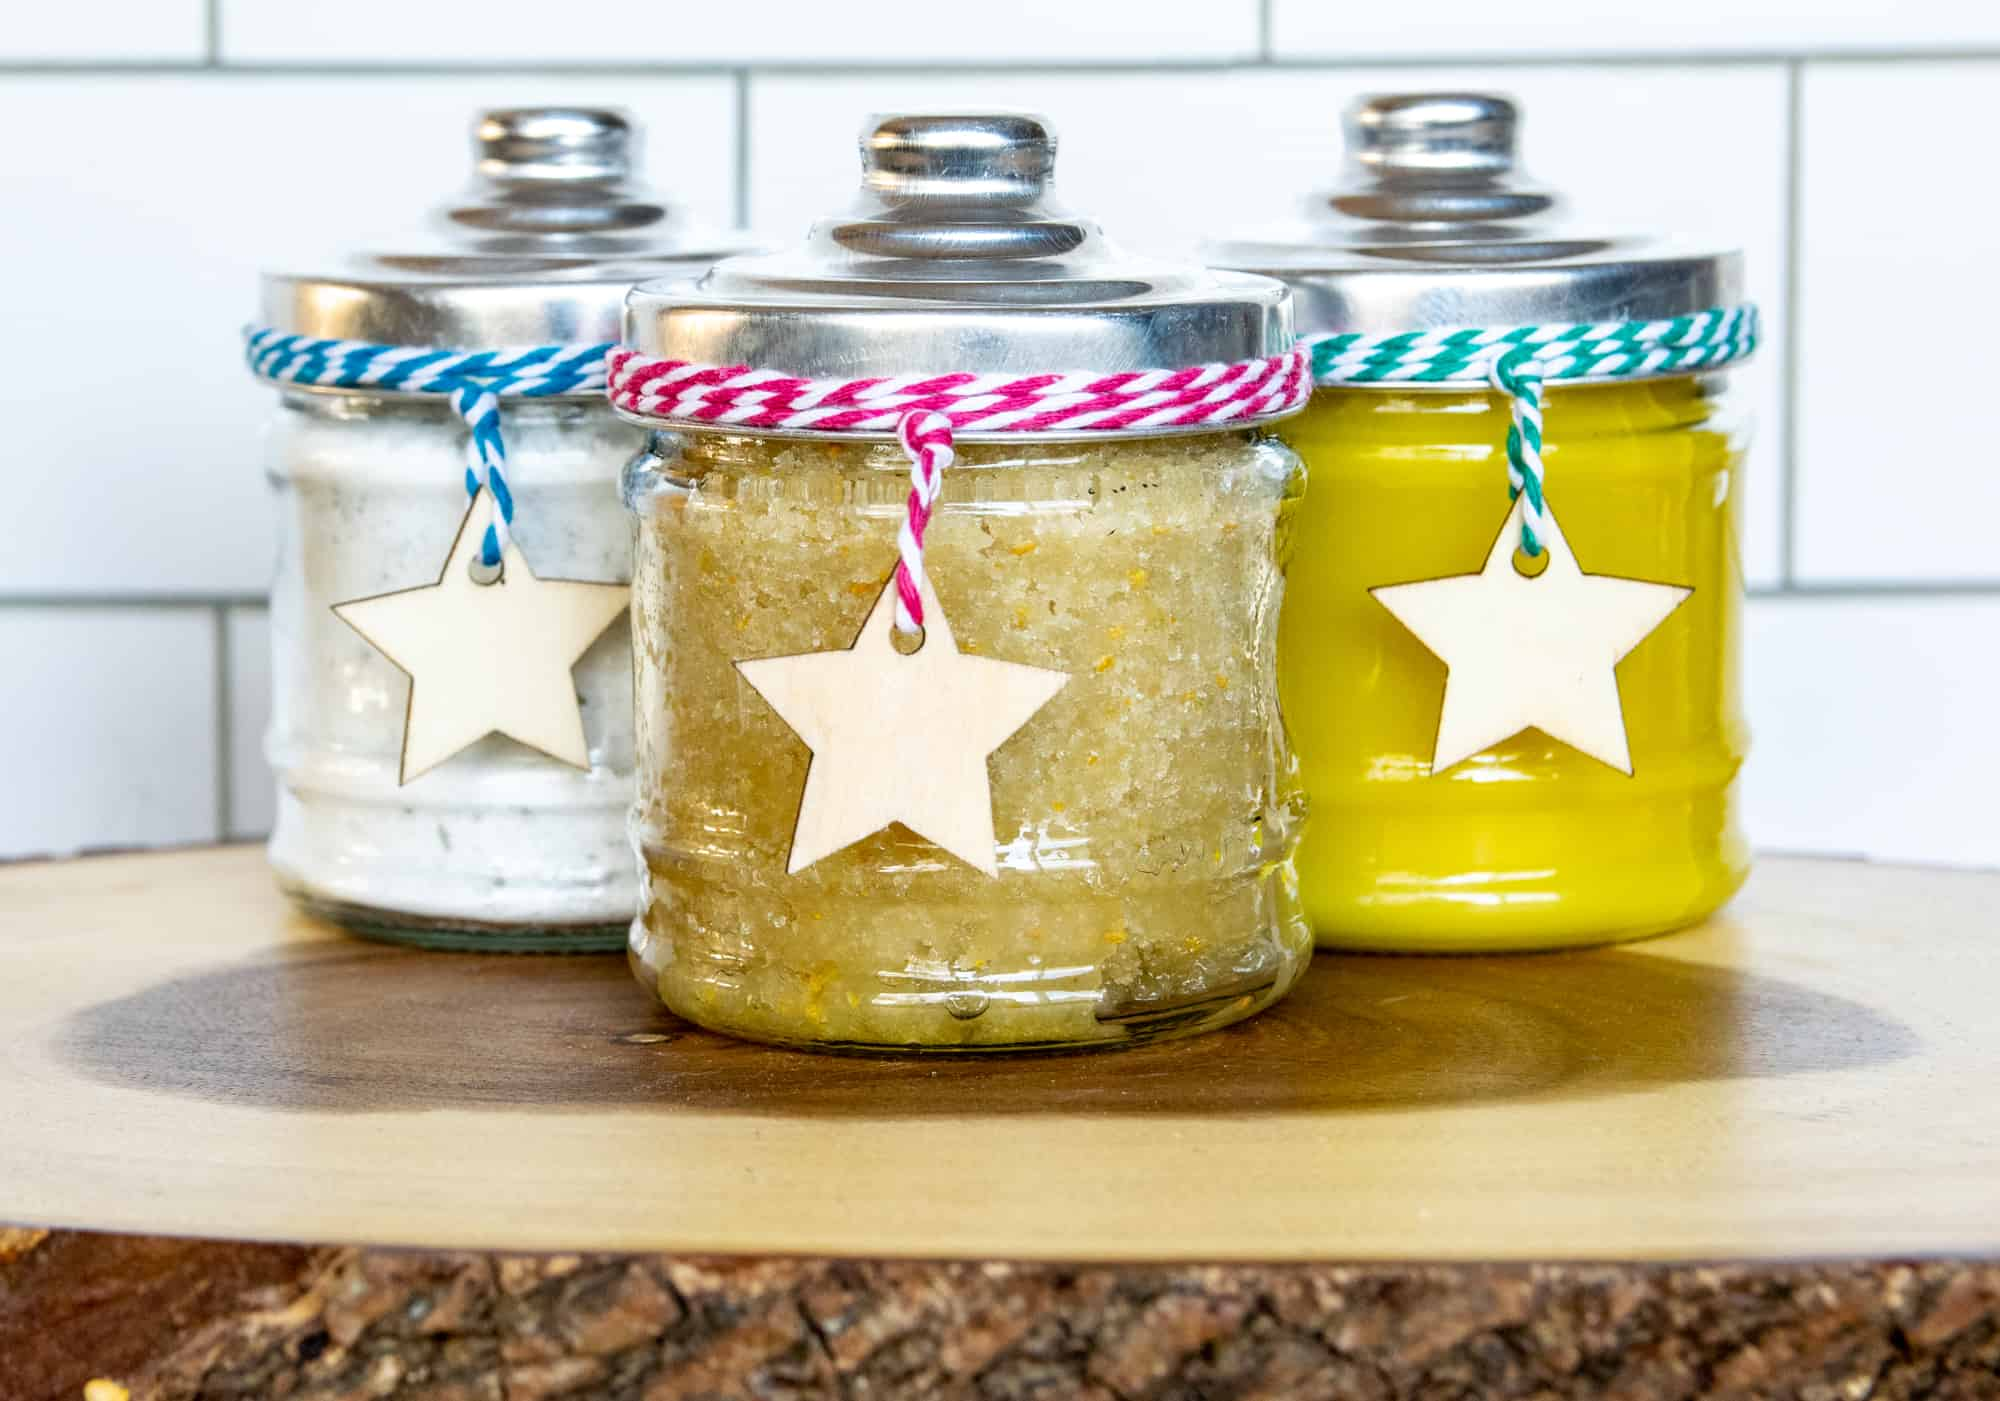 image showing 3 jars with ribbons and stars containing different body products